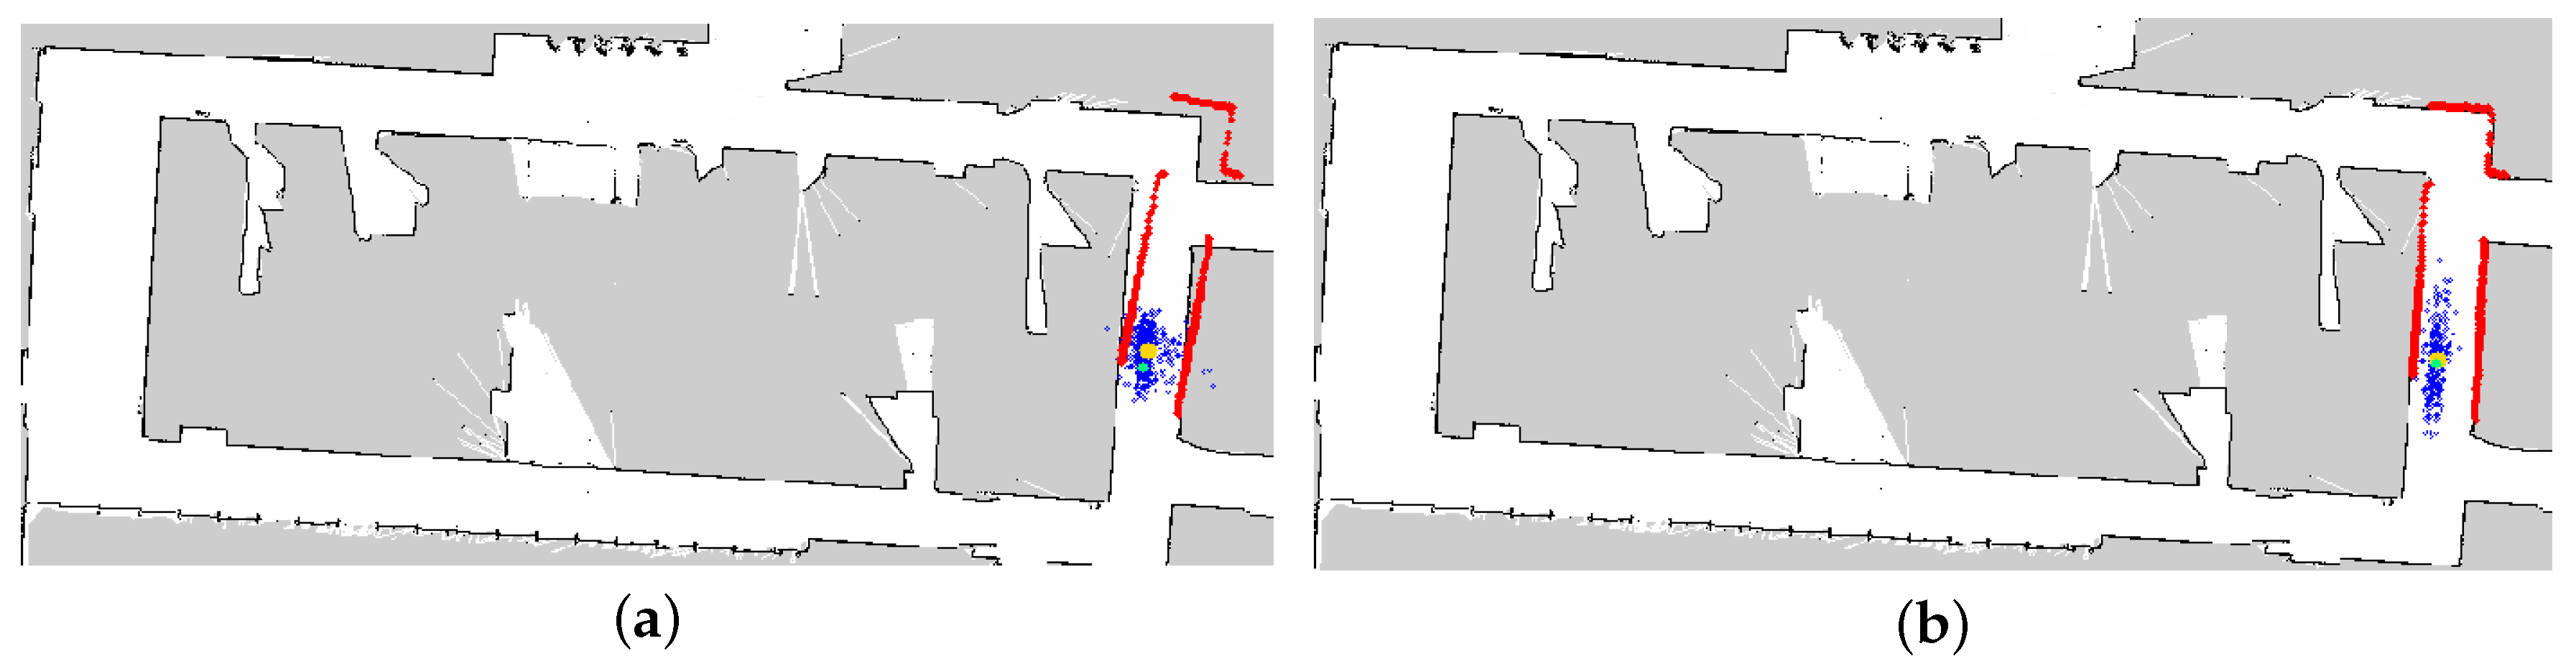 Sensors | Free Full-Text | Design of a Hybrid Indoor Location System